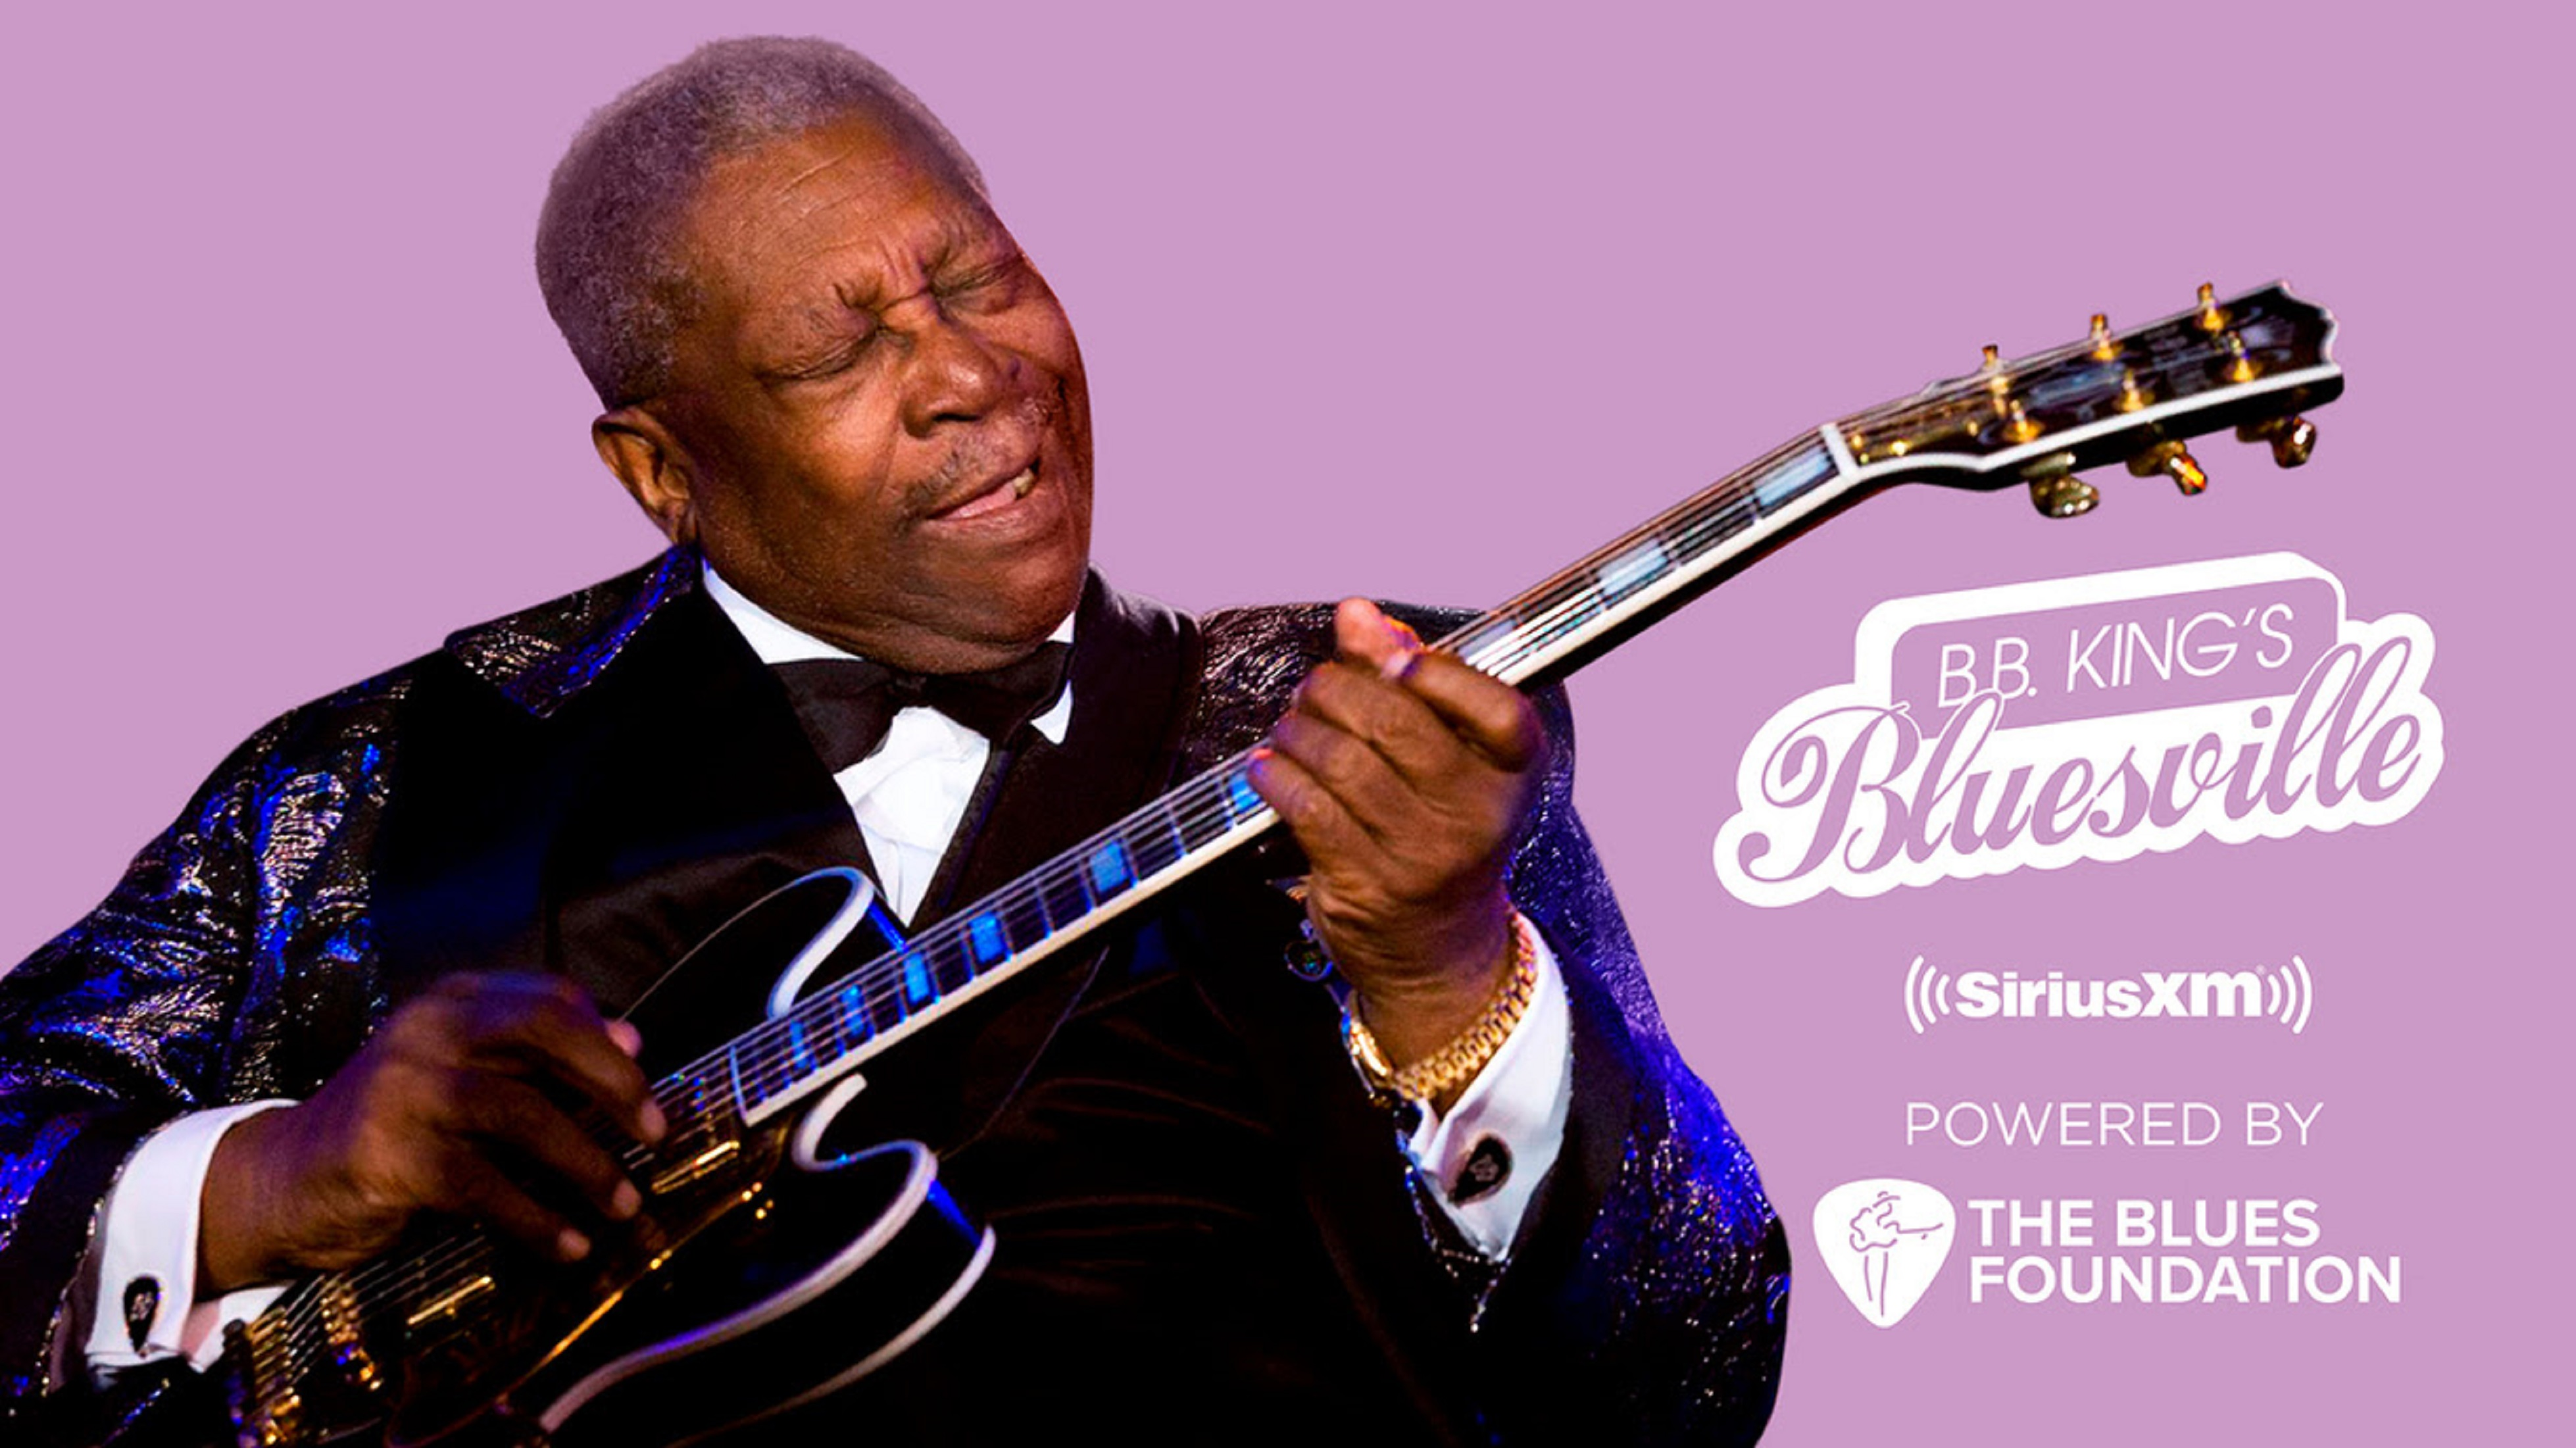 B.B. King's Bluesville on SiriusXM joins forces with the Blues Foundation